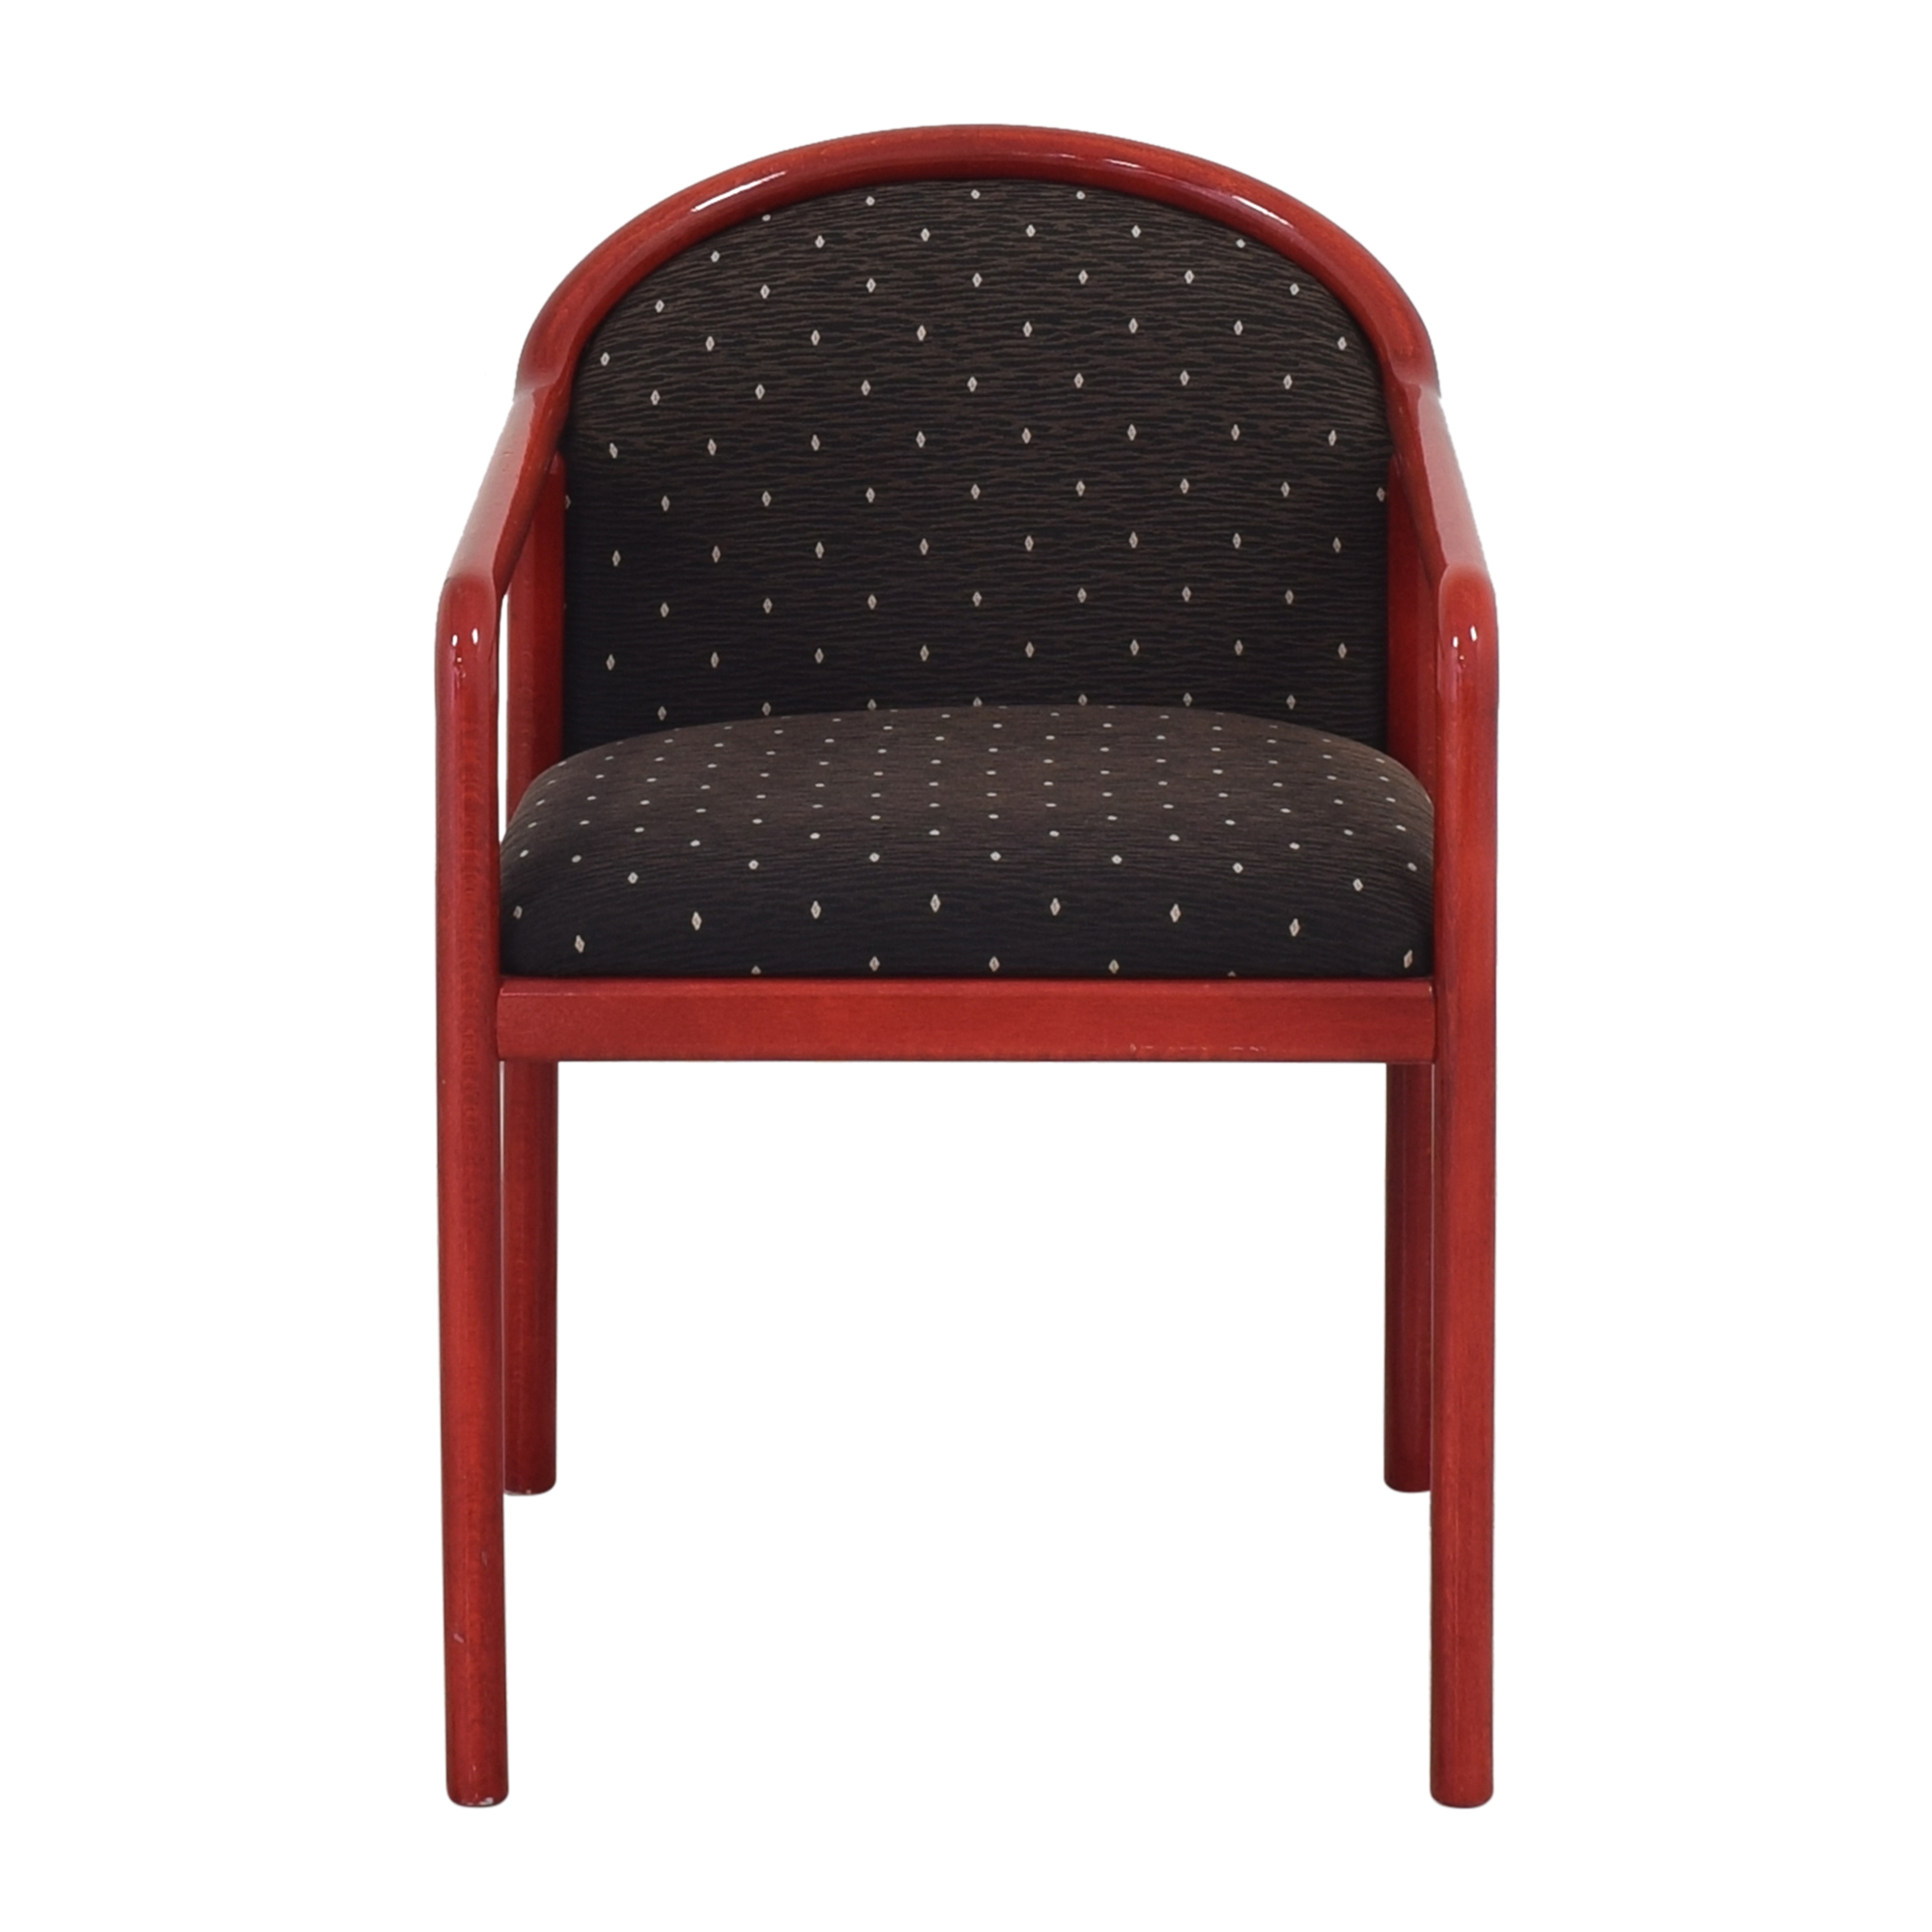 Upholstered Armchair / Chairs